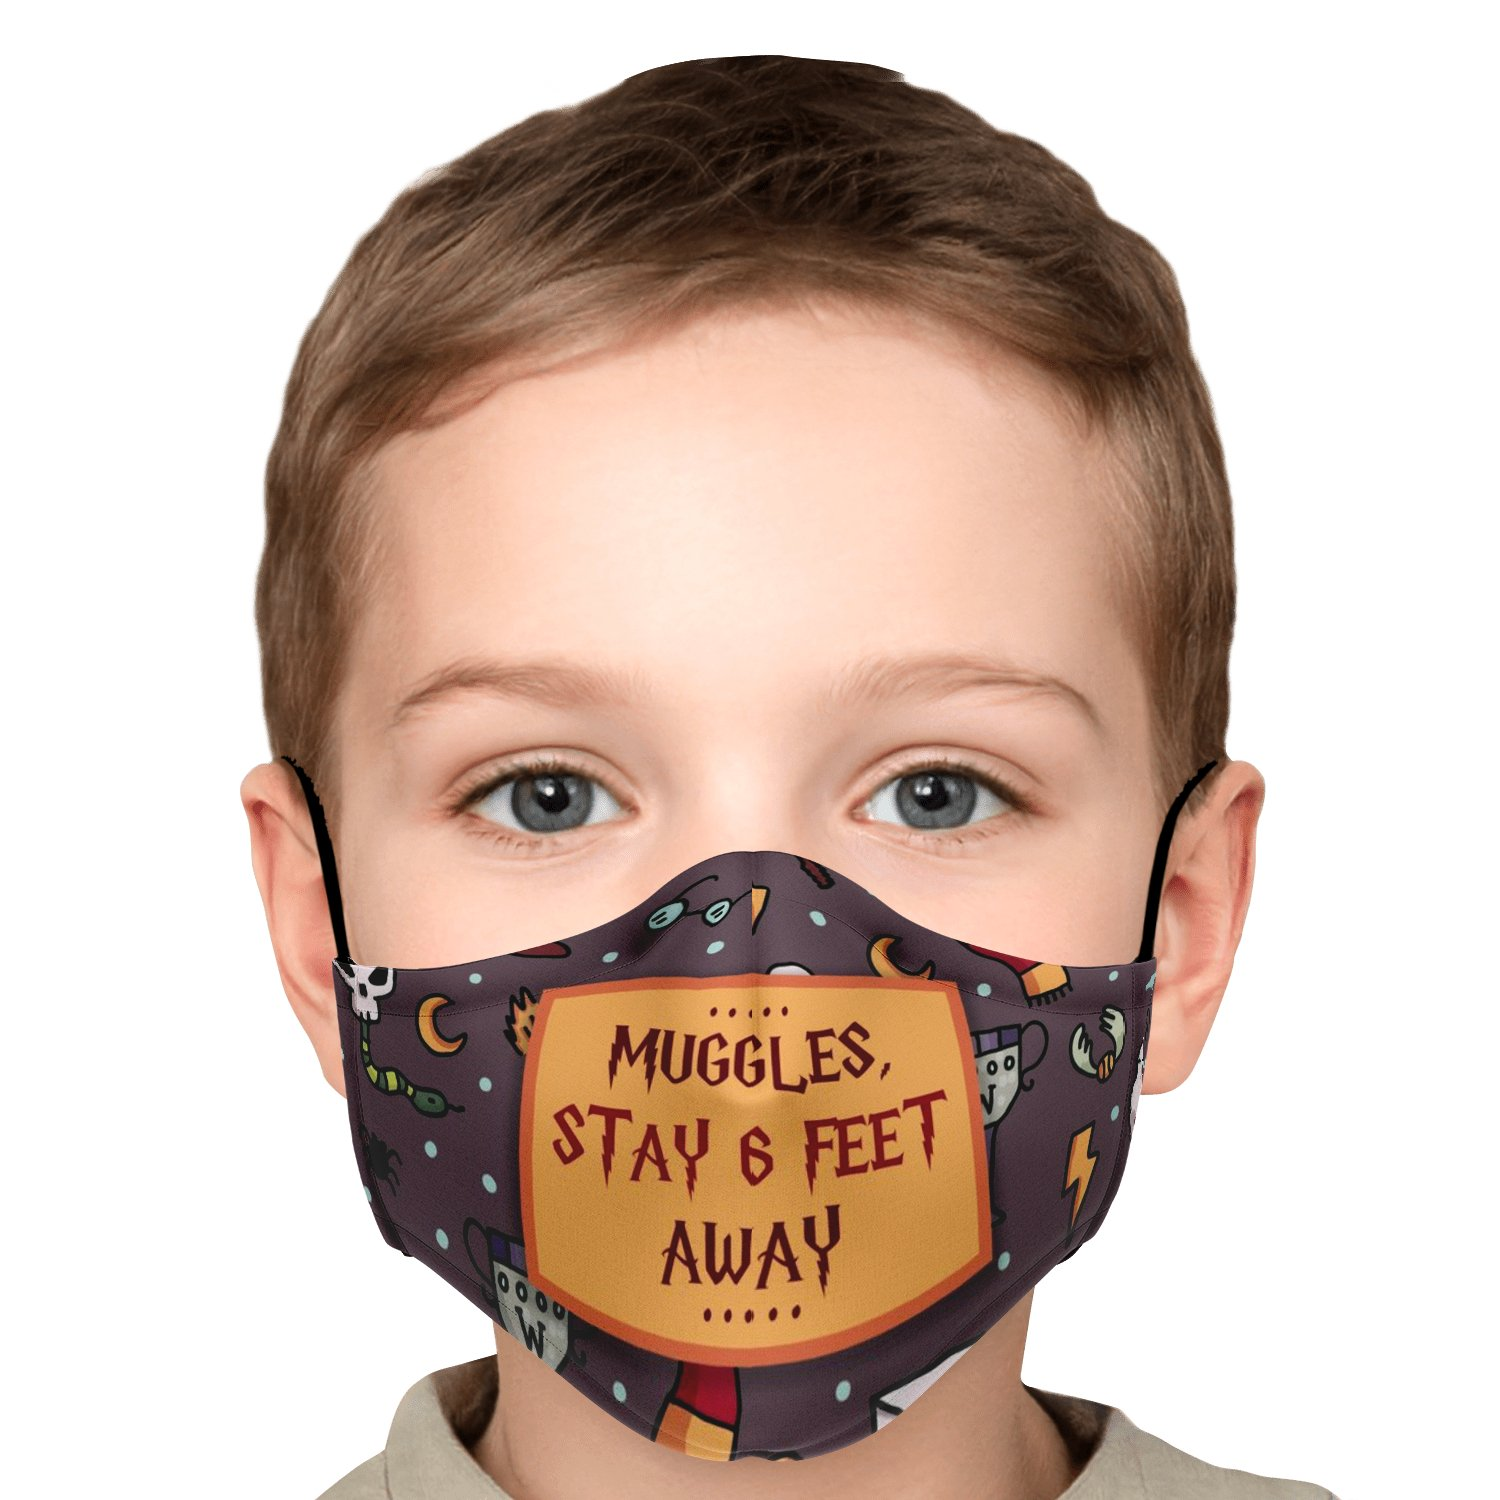 Muggles Stay 6 Feet Away Harry Potter Face Mask 6